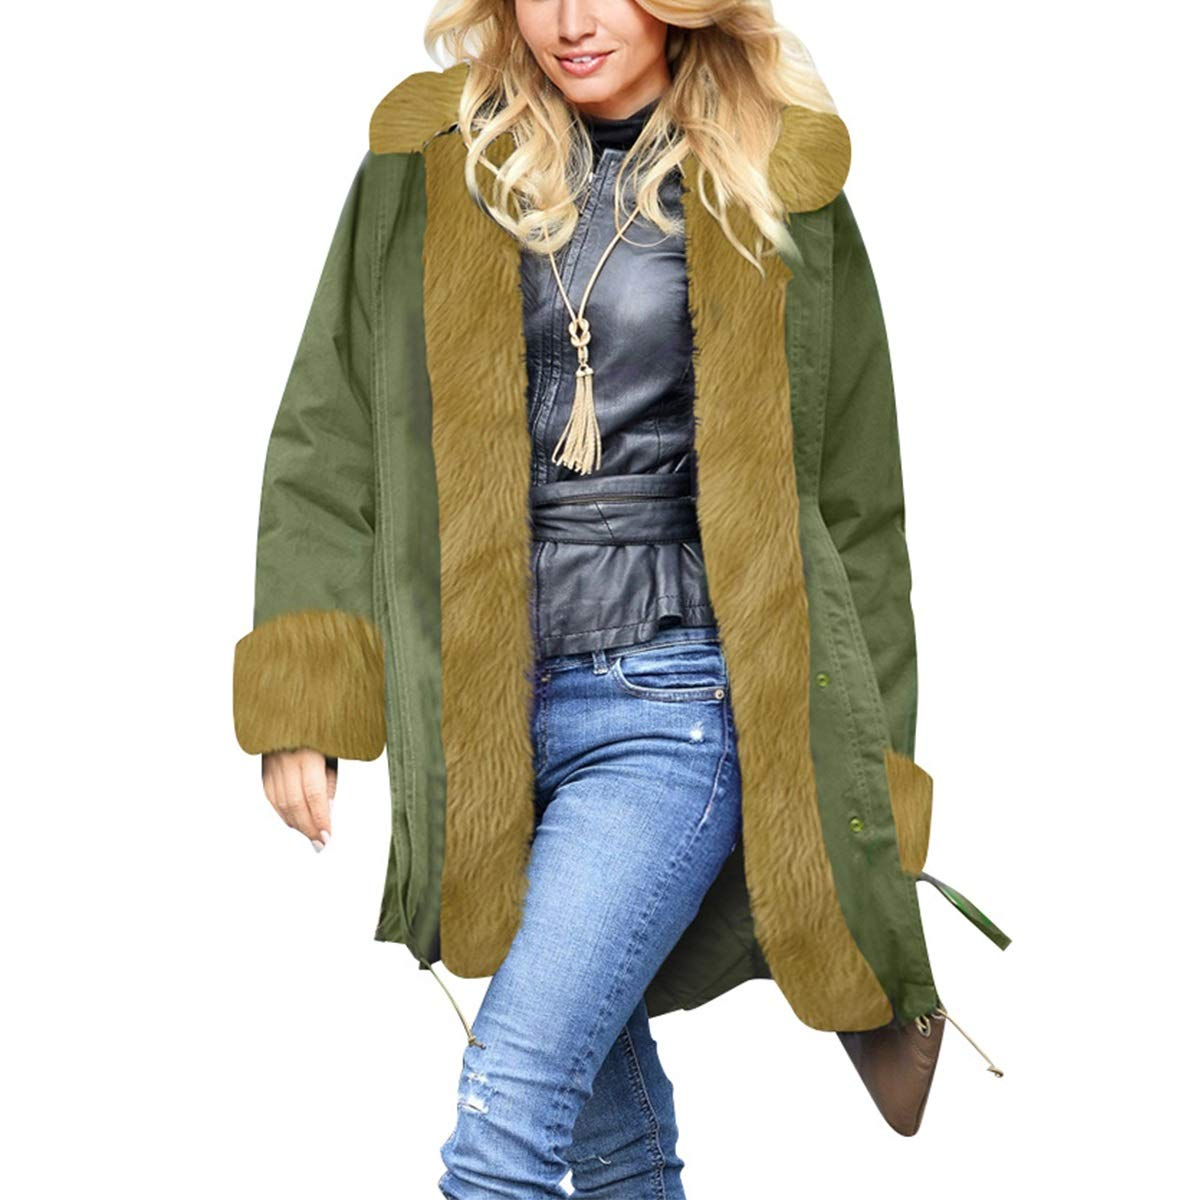 Green4 Womens Winter Warm Thicken Long Sleeve Faux Fur Collar Hooded Parka Jacket Coat